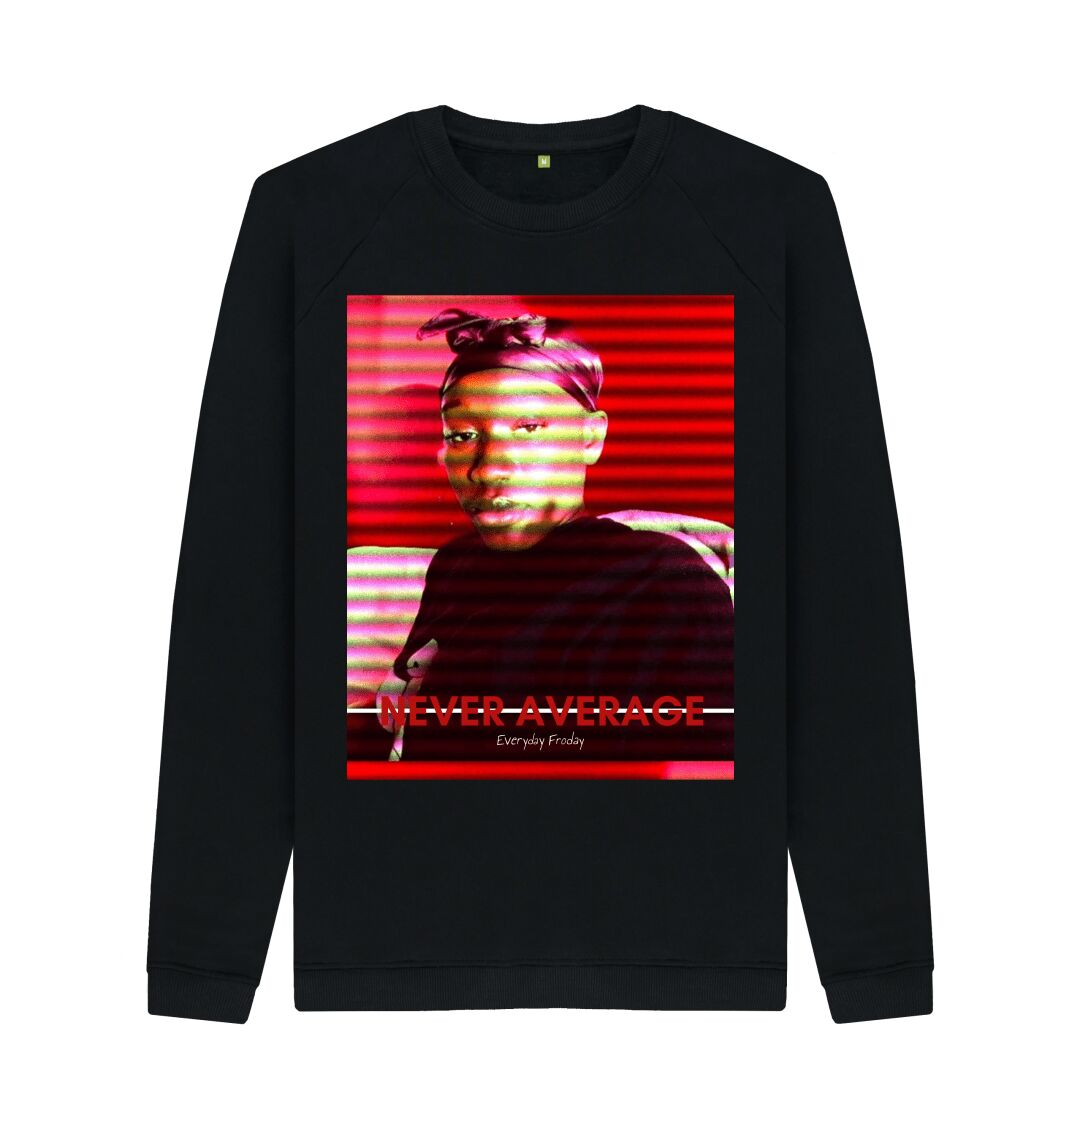 Black Unisex Sweatshirt | Never Average RED (black)